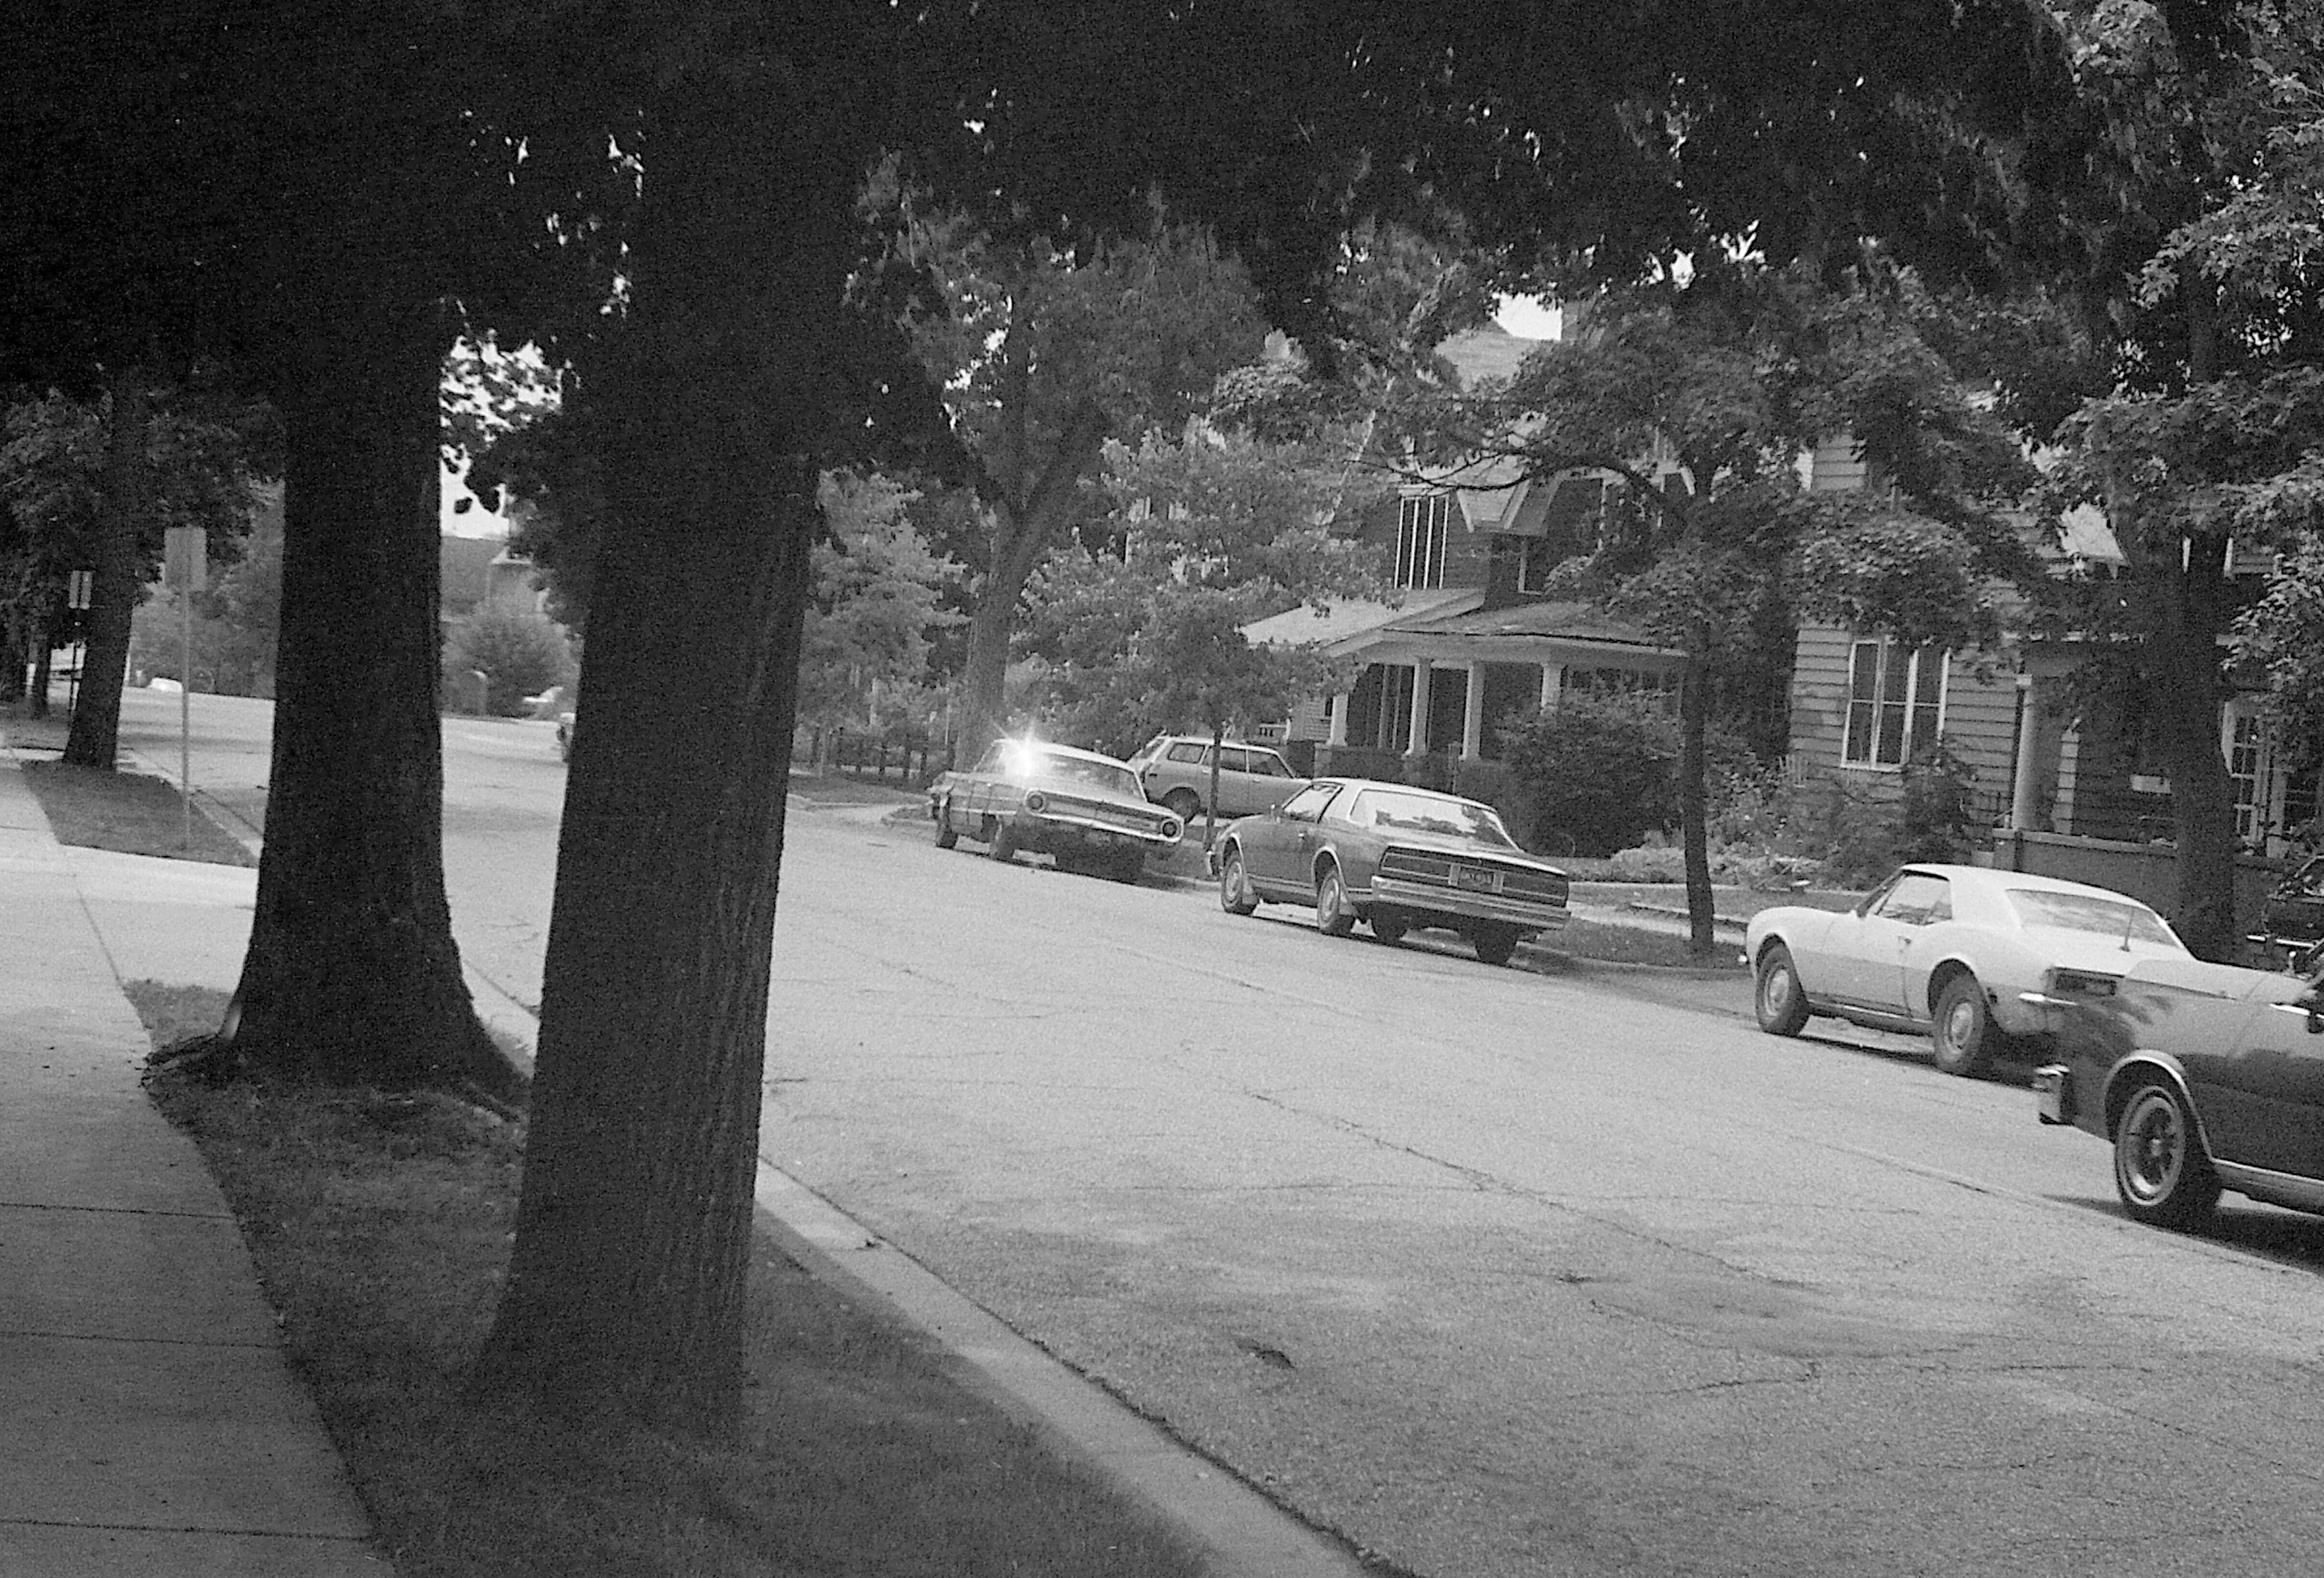 Cars on the Street, 1978 image